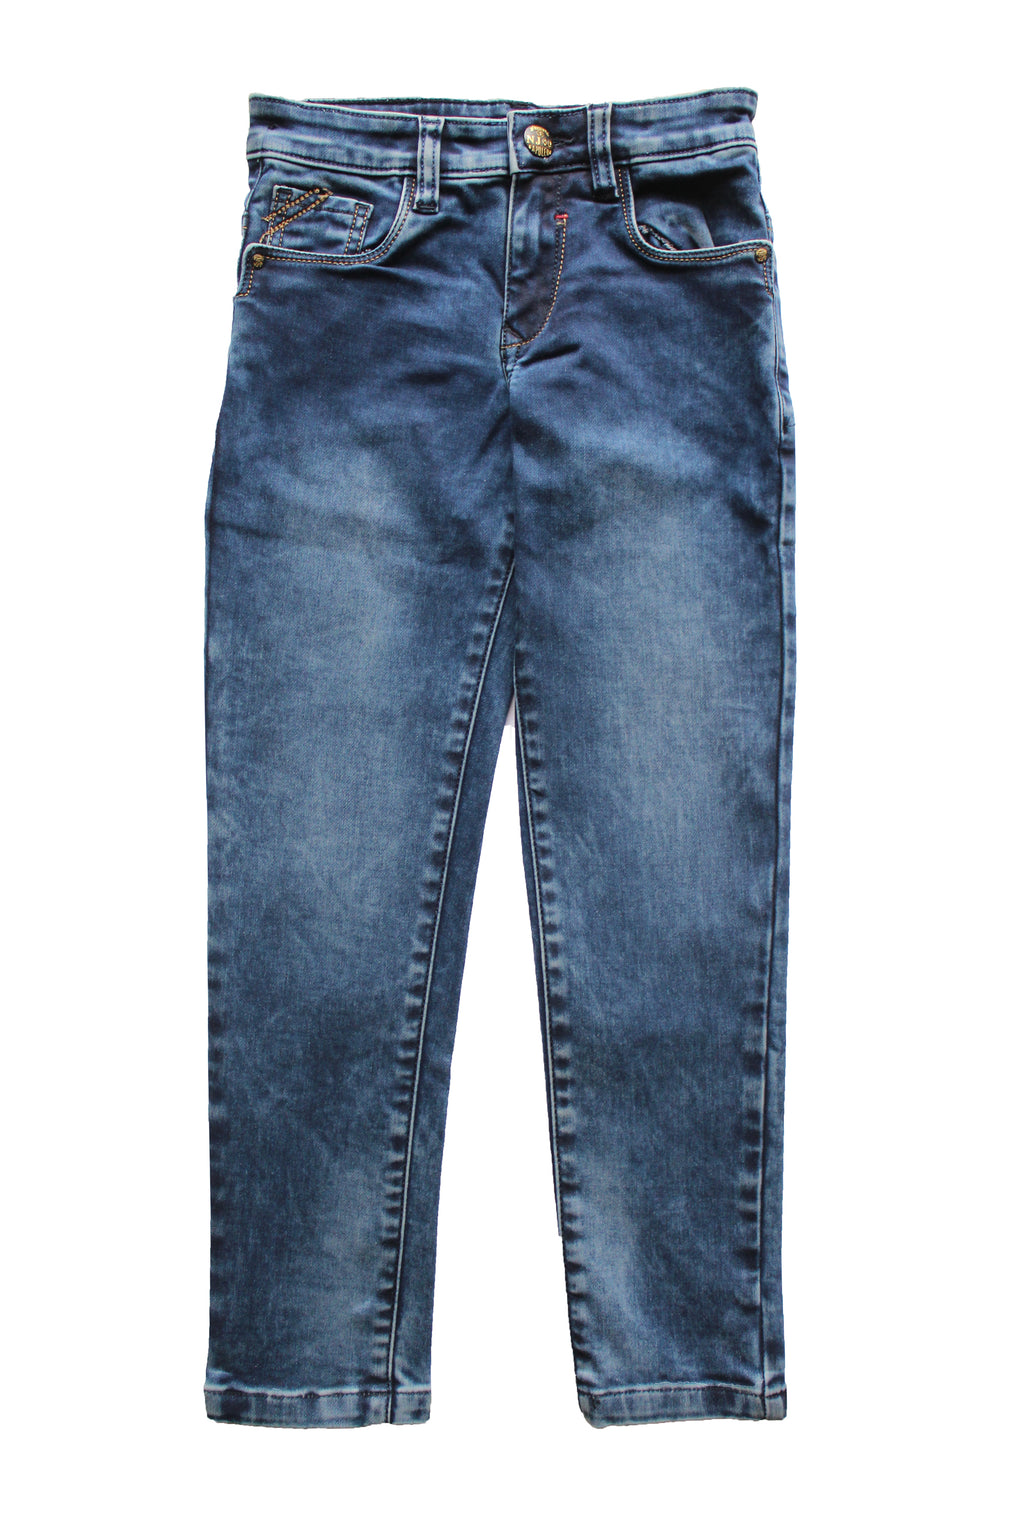 Wish Karo | Boys Blue Denim Jeans